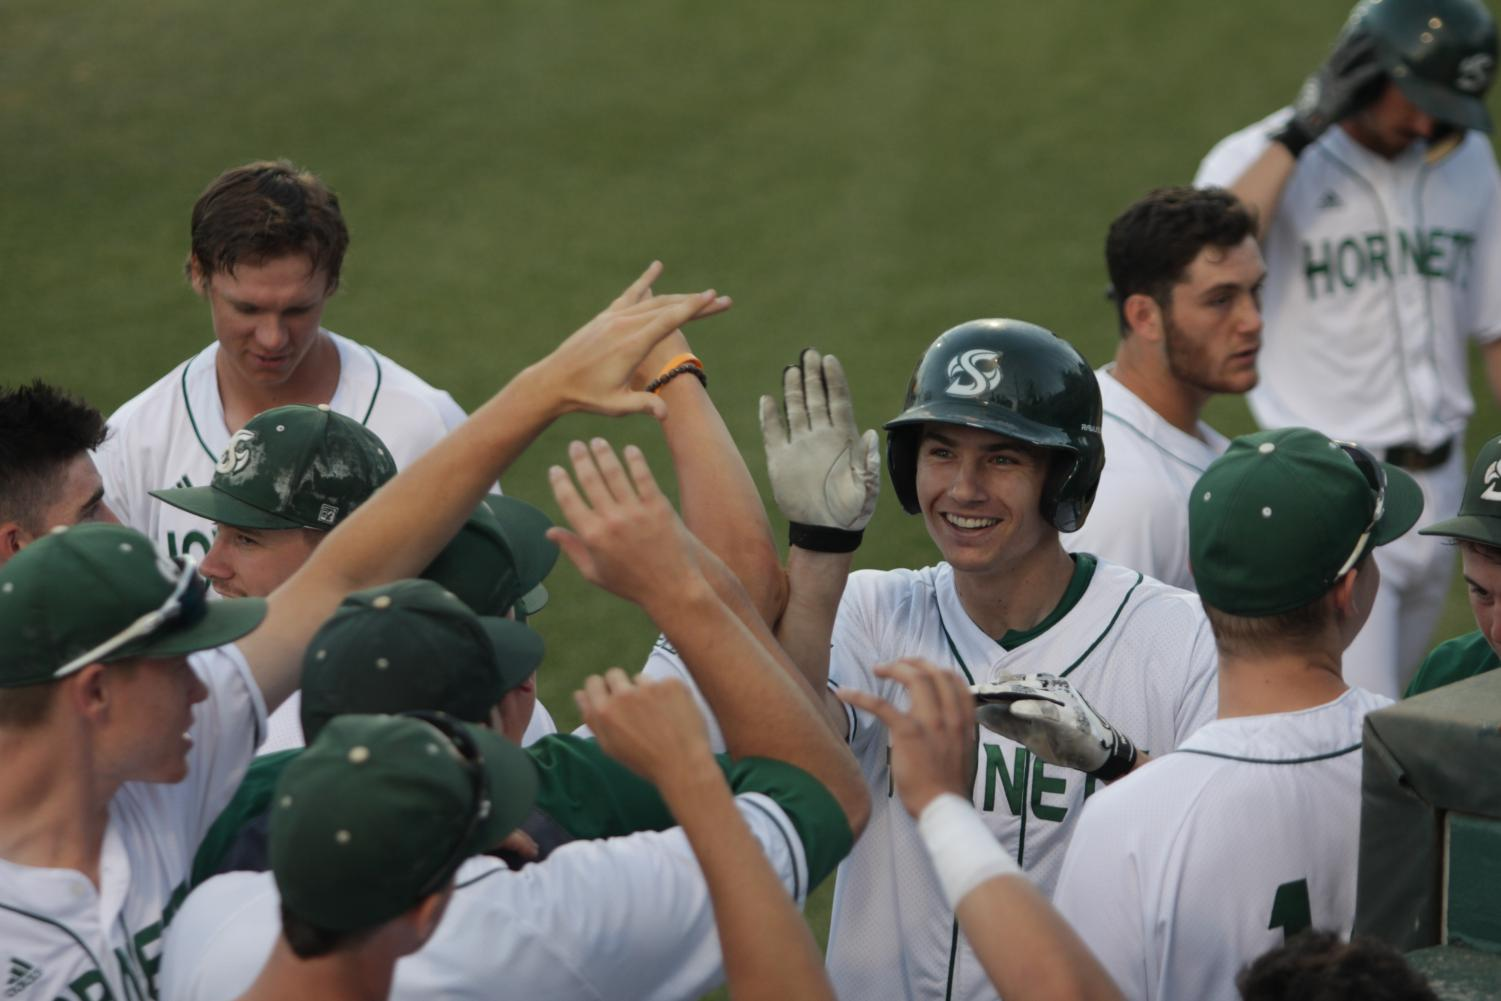 The Sacramento State baseball team celebrates after senior outfielder Andrew McWilliam, center, hit a home run against UC Davis at John Smith Field on Tuesday, May 8, 2018. The Hornets defeated the Aggies 5-2.